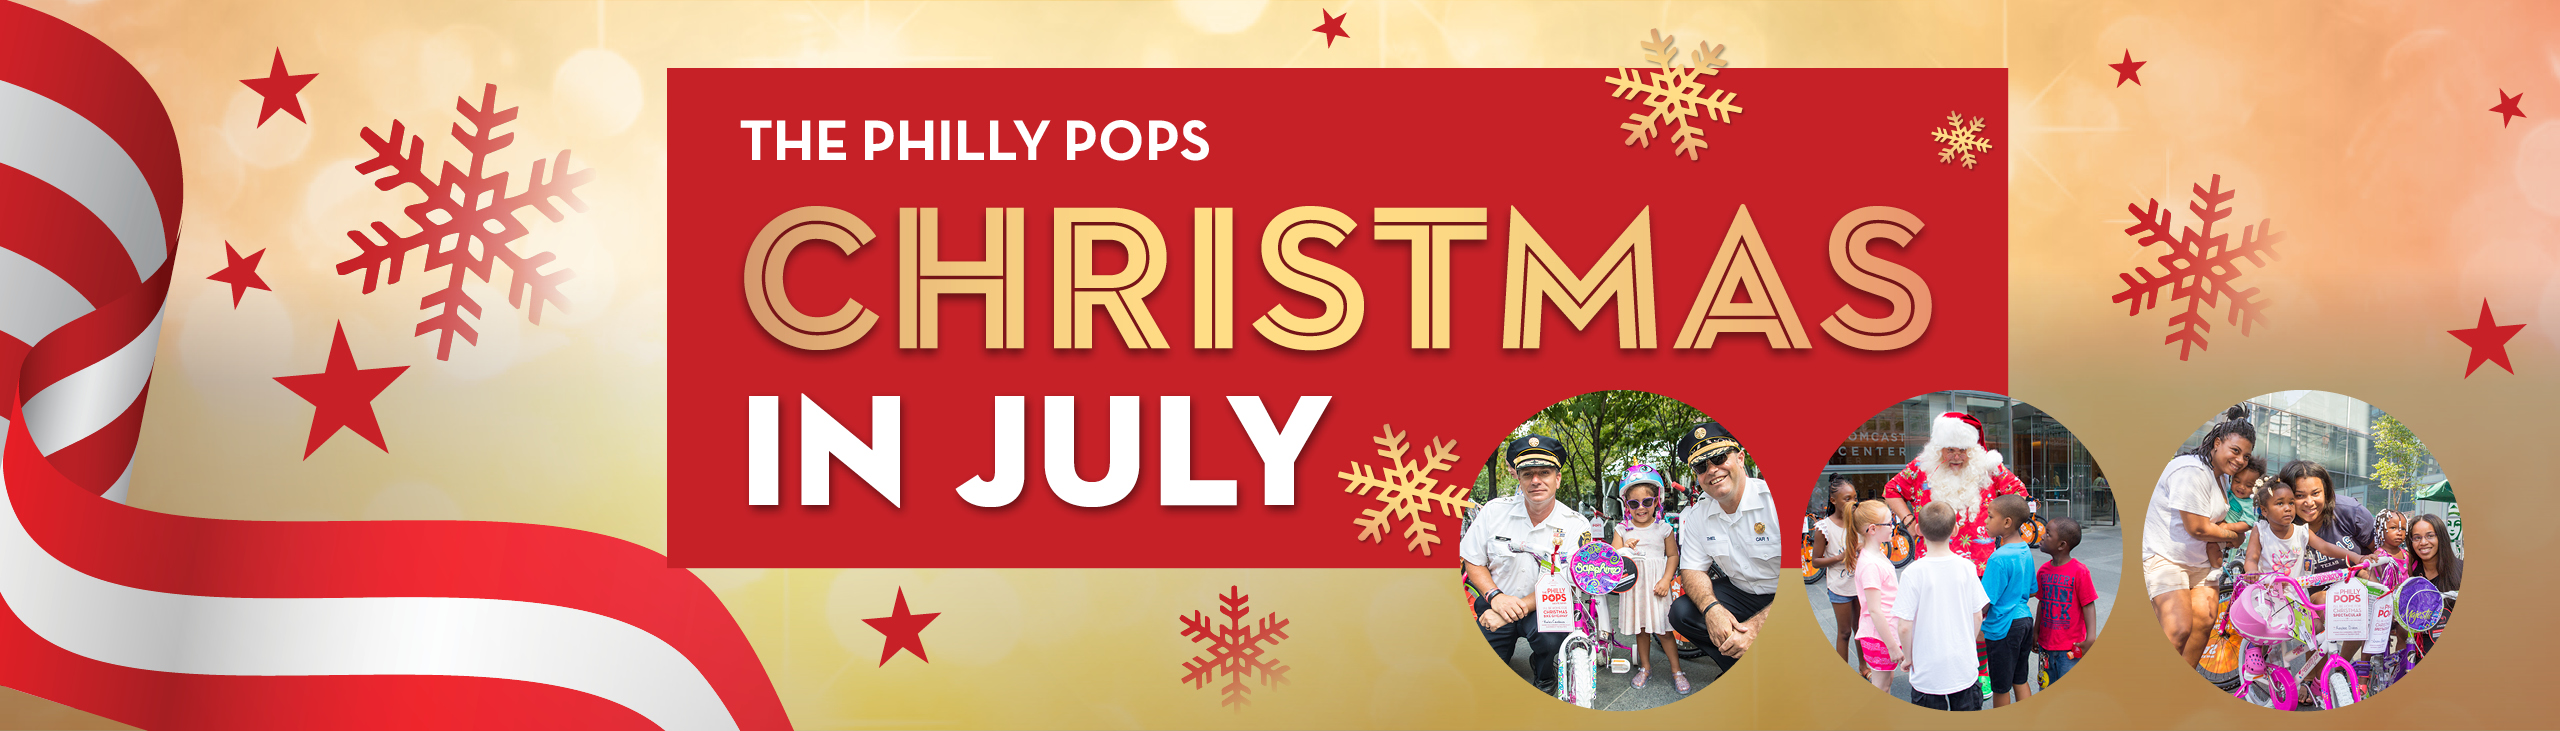 Philly Pops Christmas 2019 Christmas In July 2019 | The Philly Pops